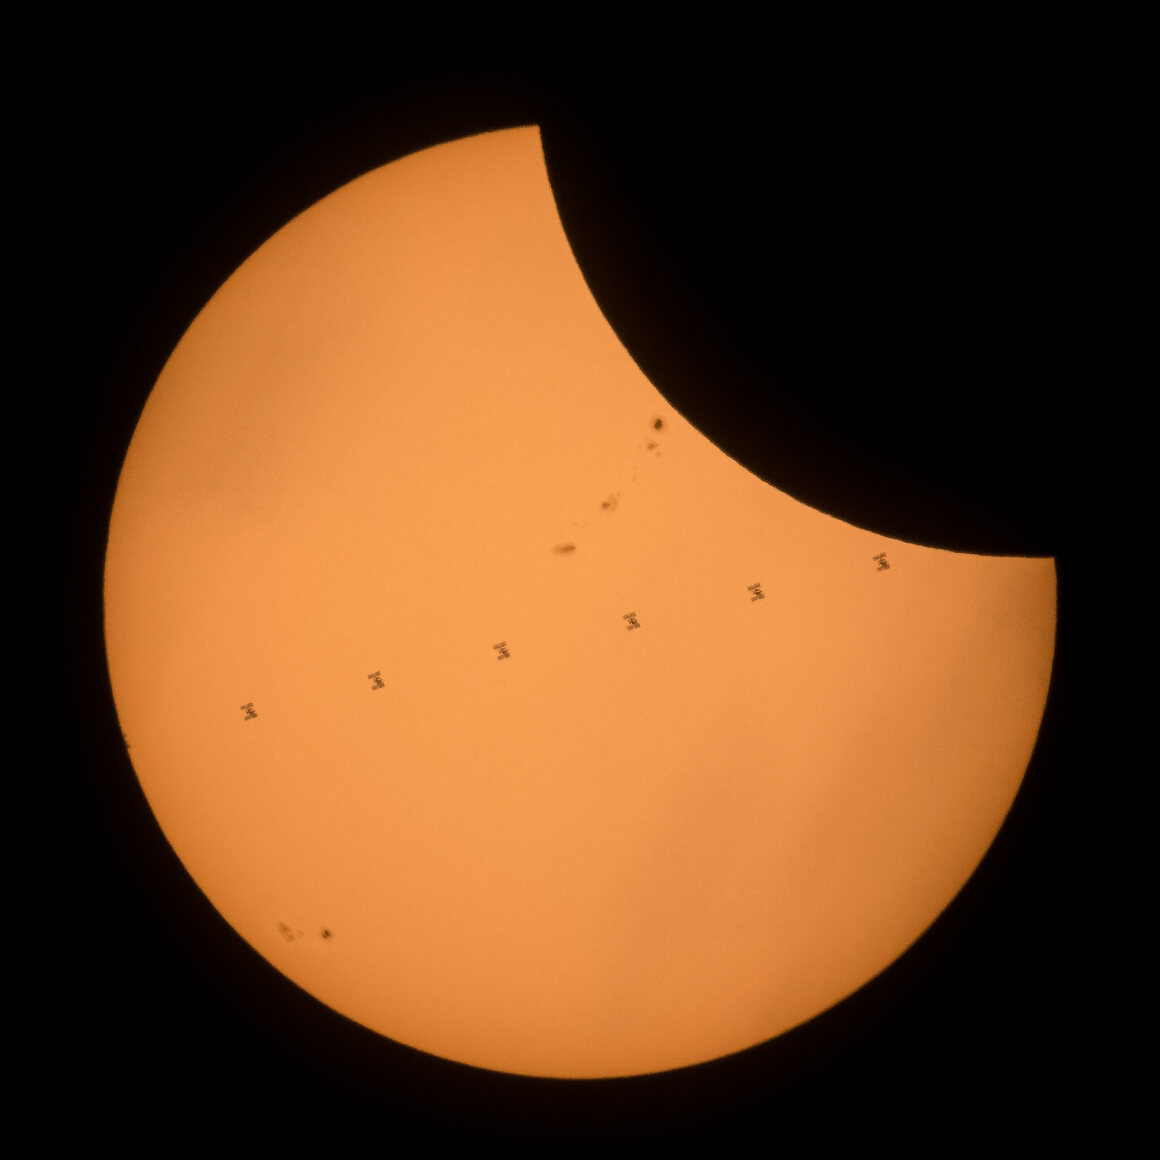 The International Space Station crosses the solar disk during the eclipse.